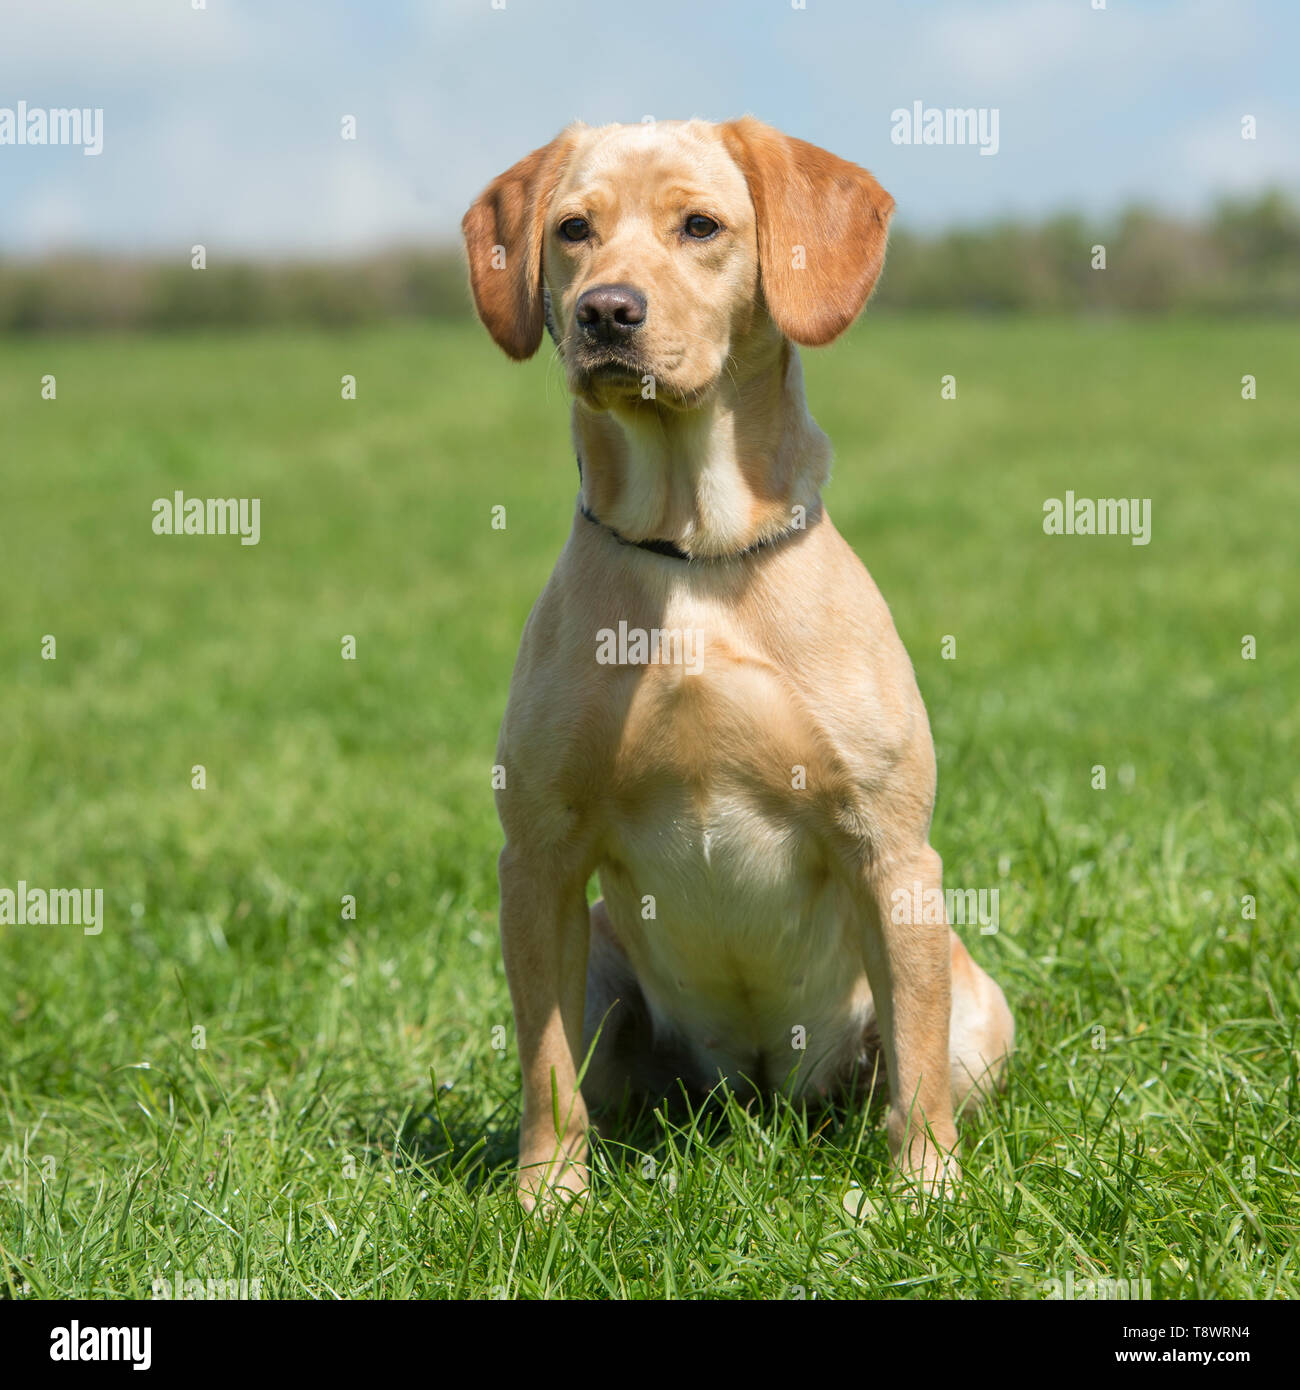 labrador cross cocker spaniel dog - Stock Image